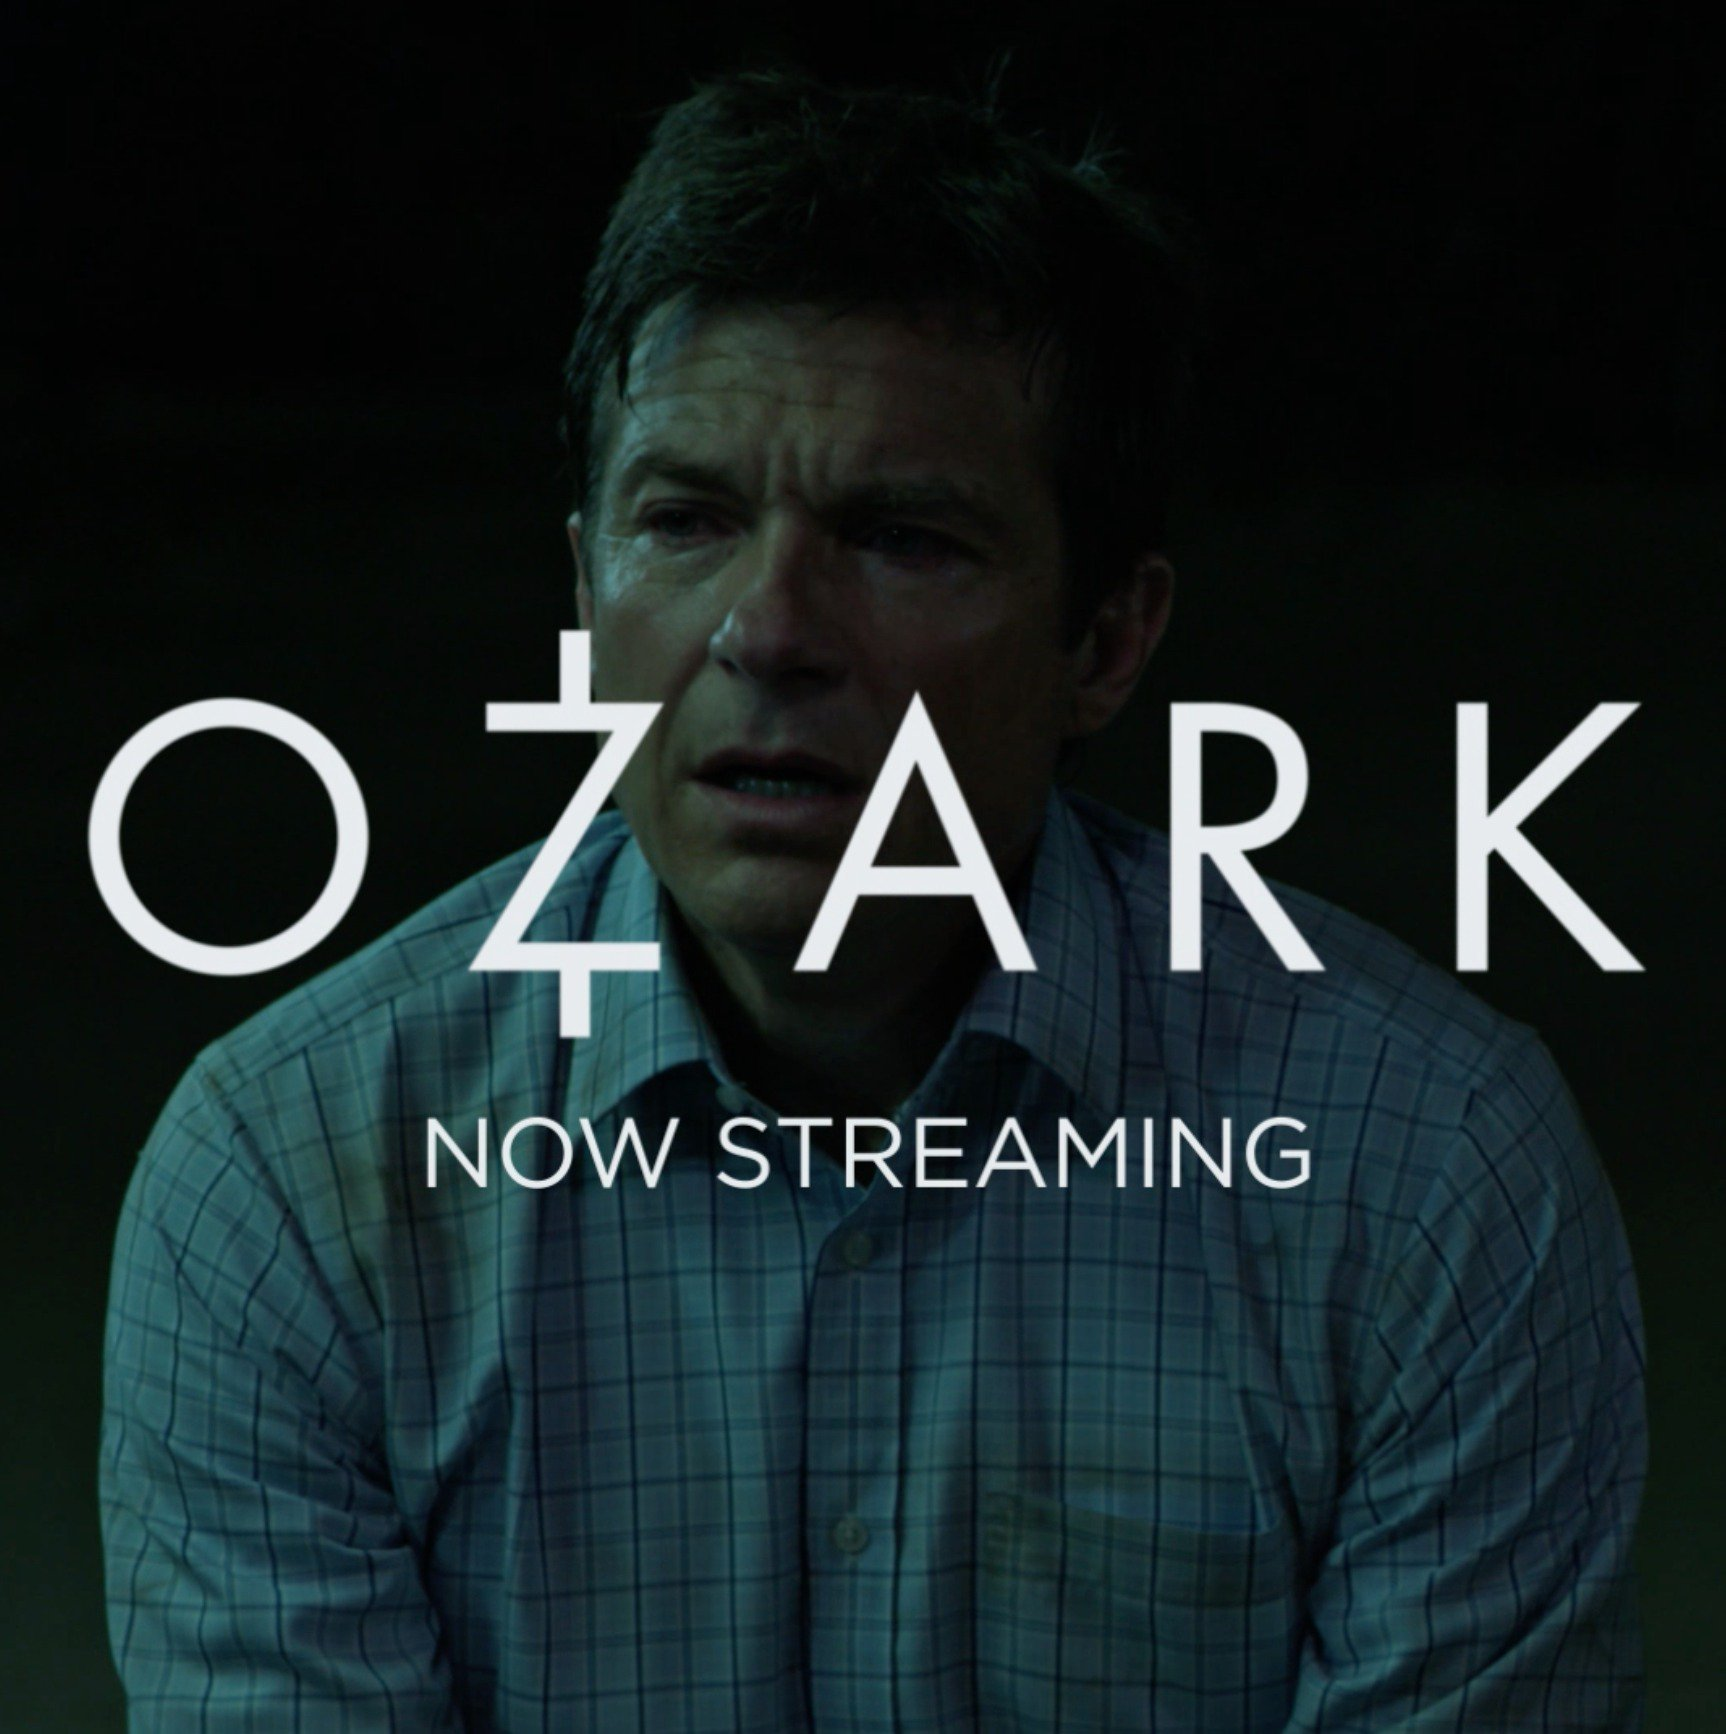 Welcome to the last resort. Ozark is now streaming. https://t.co/1F375hVasA